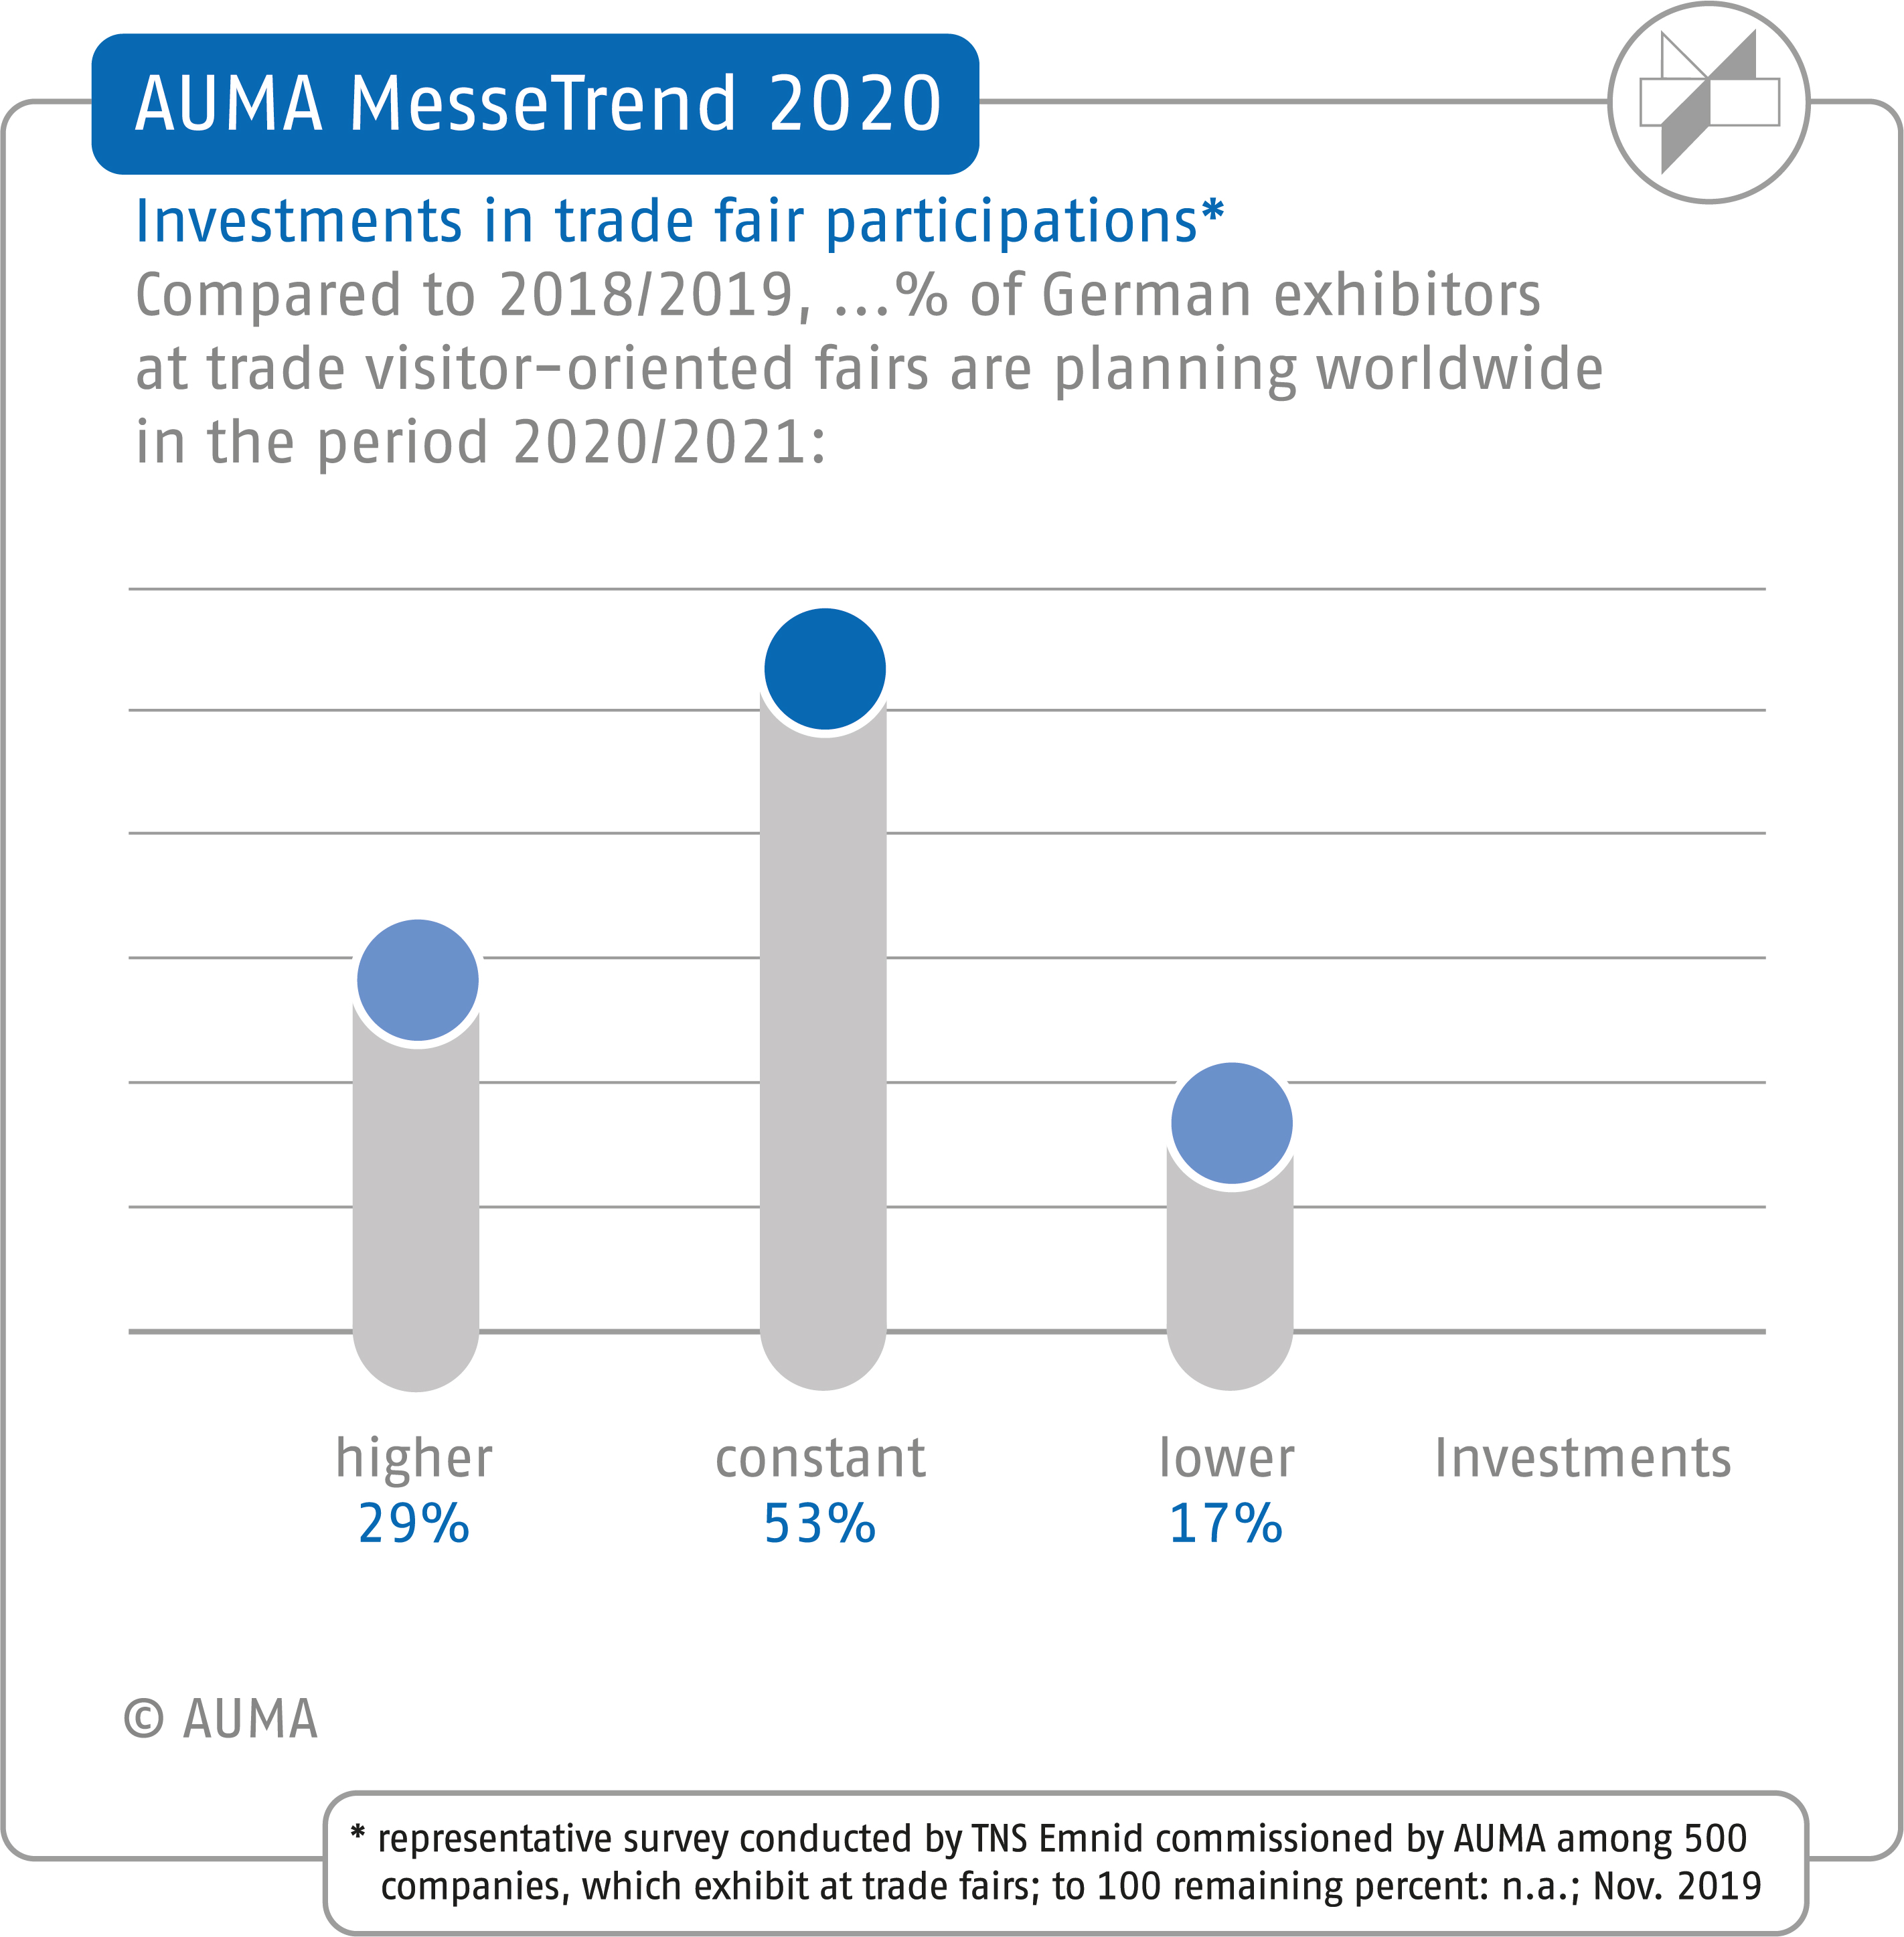 2020 AUMA MesseTrend survey – Planned trade fair investment